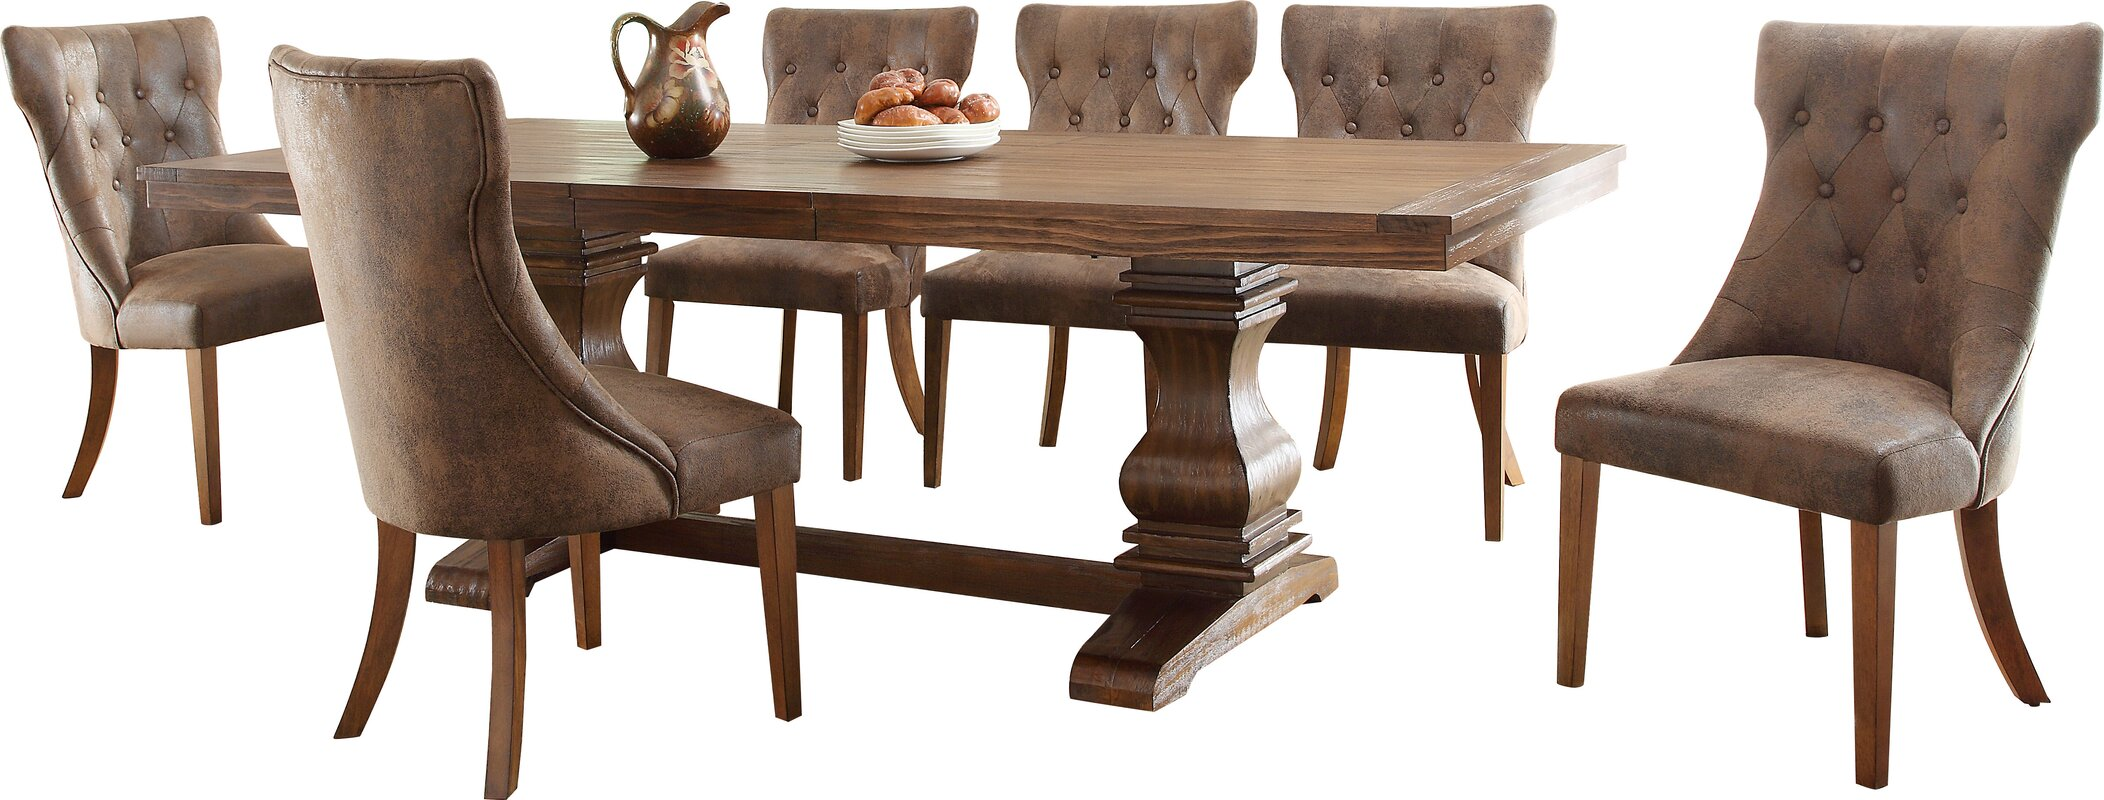 schwager extendable wood dining table - Wood Dining Room Tables